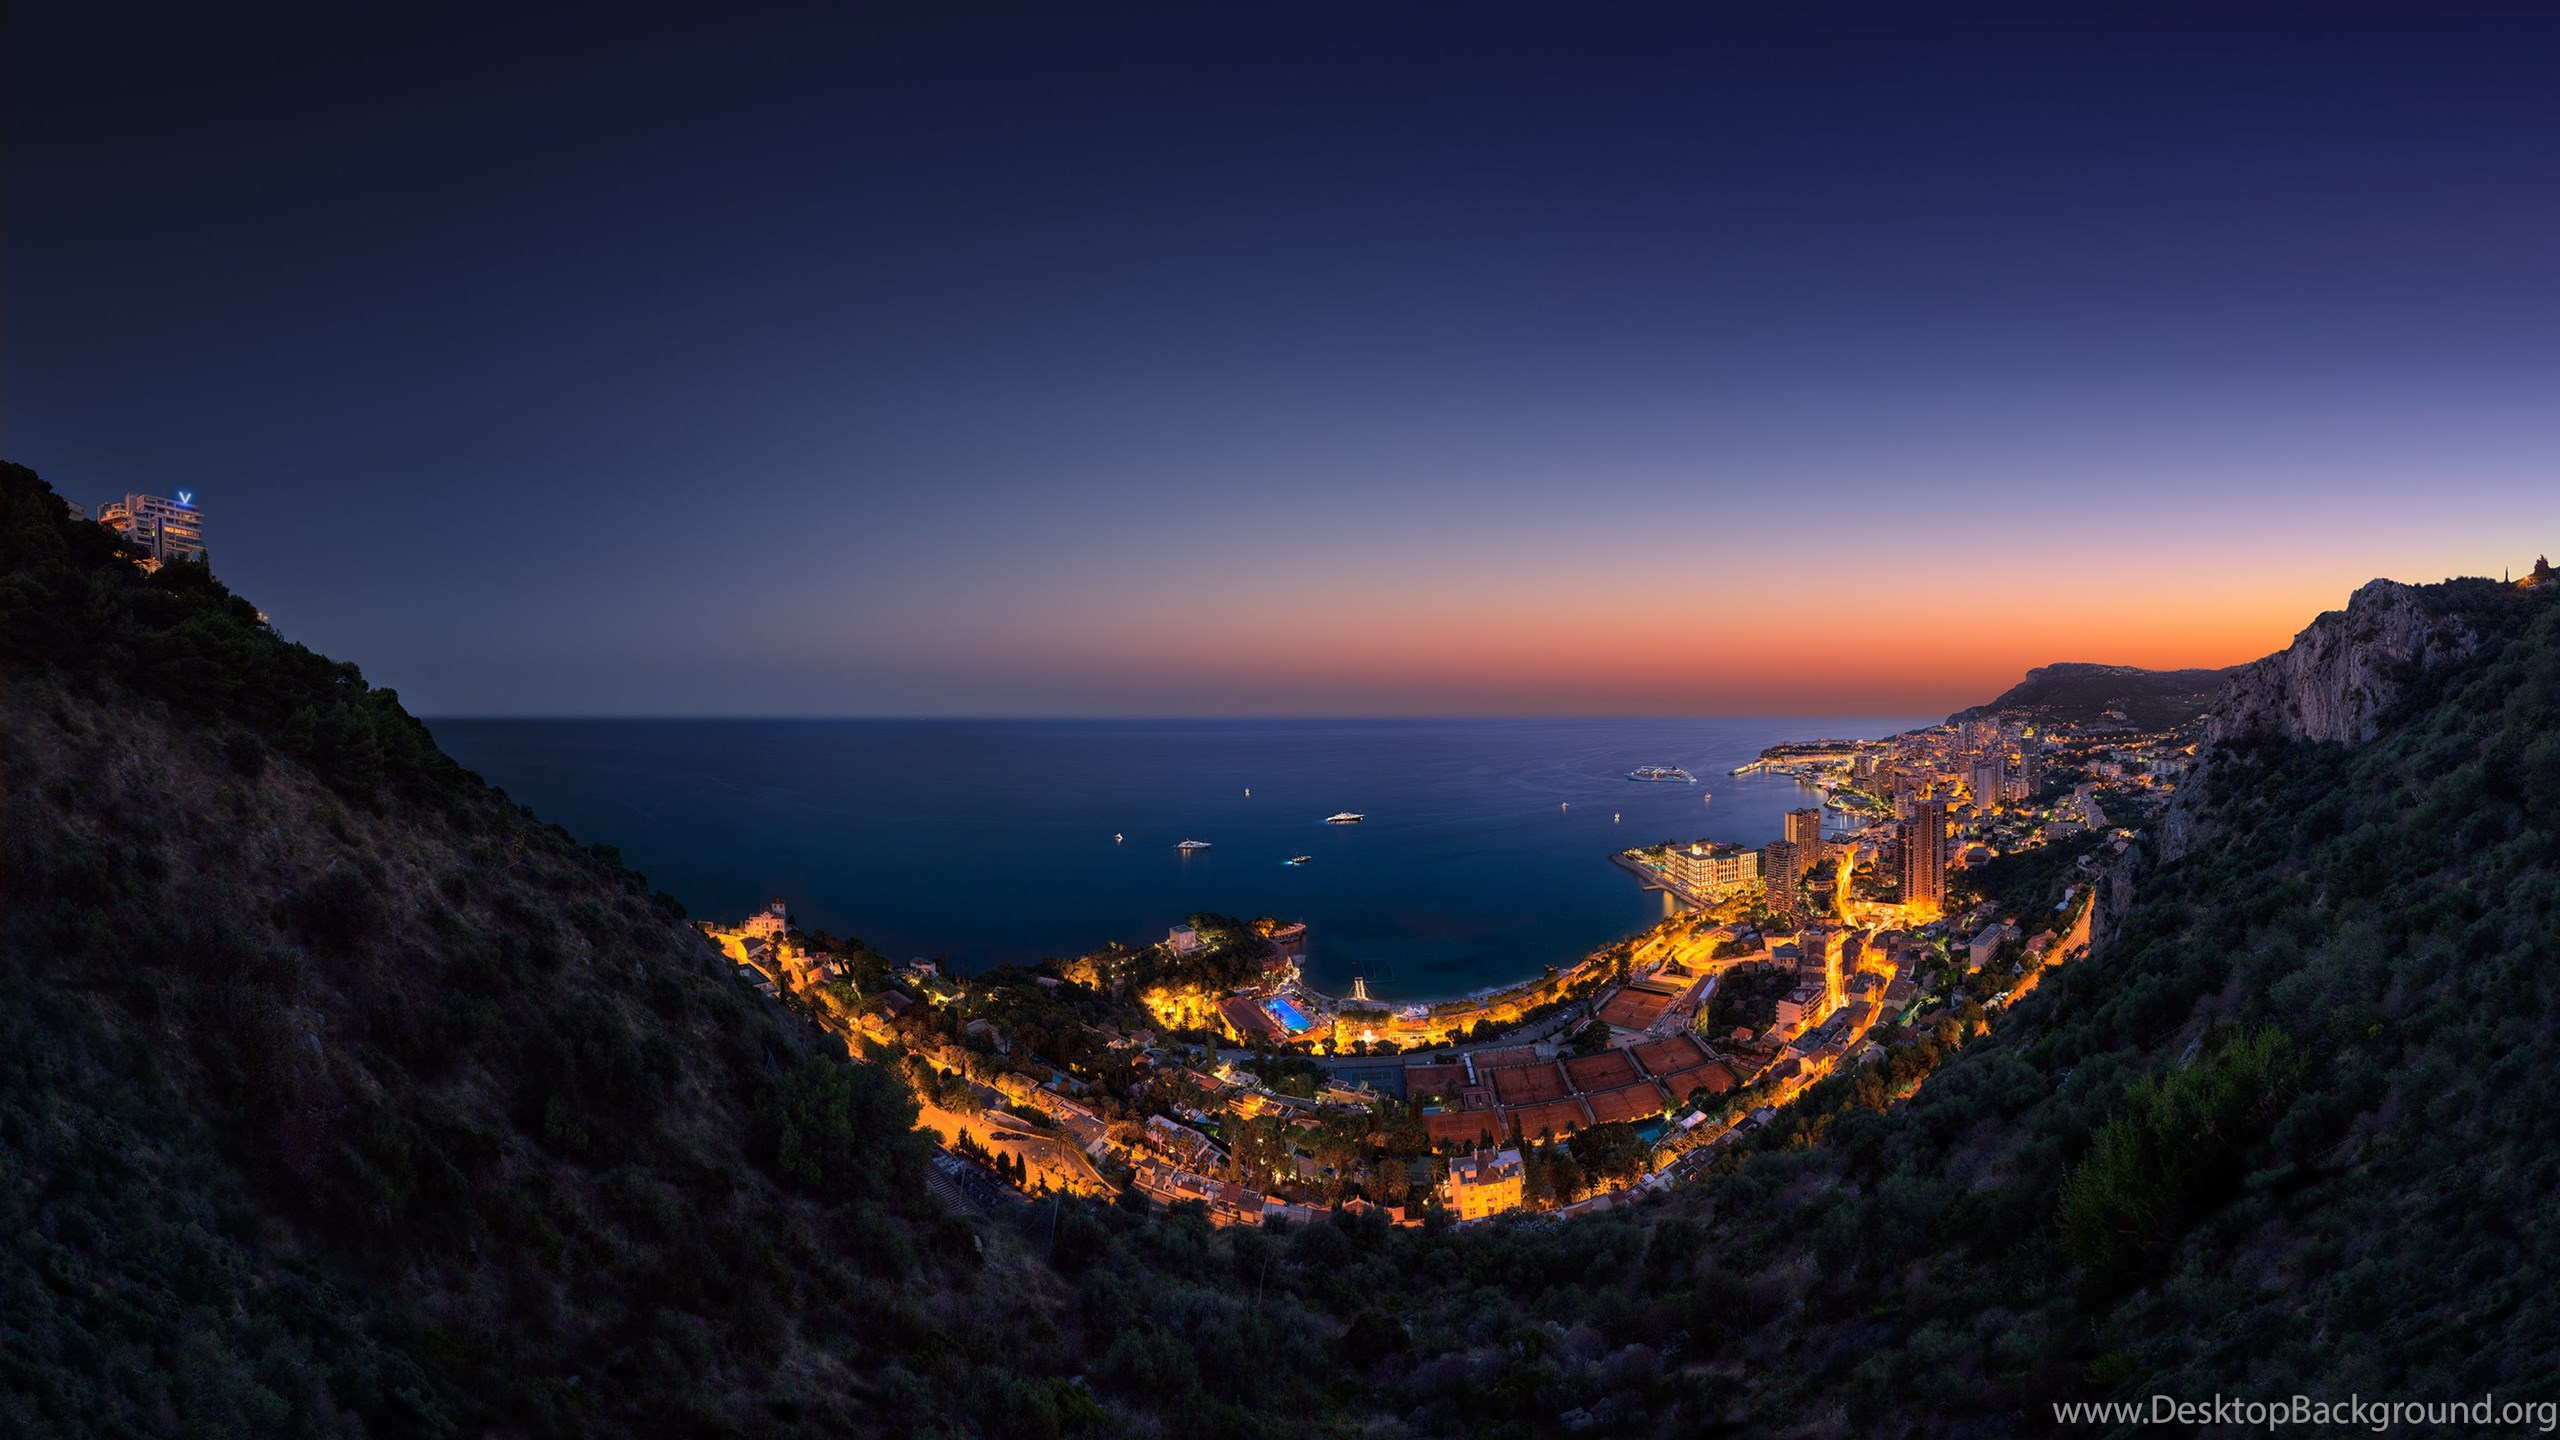 Retina Macbook 15 Monaco 2880x1800 Hd Wallpapers And Free Stock Photo Desktop Background